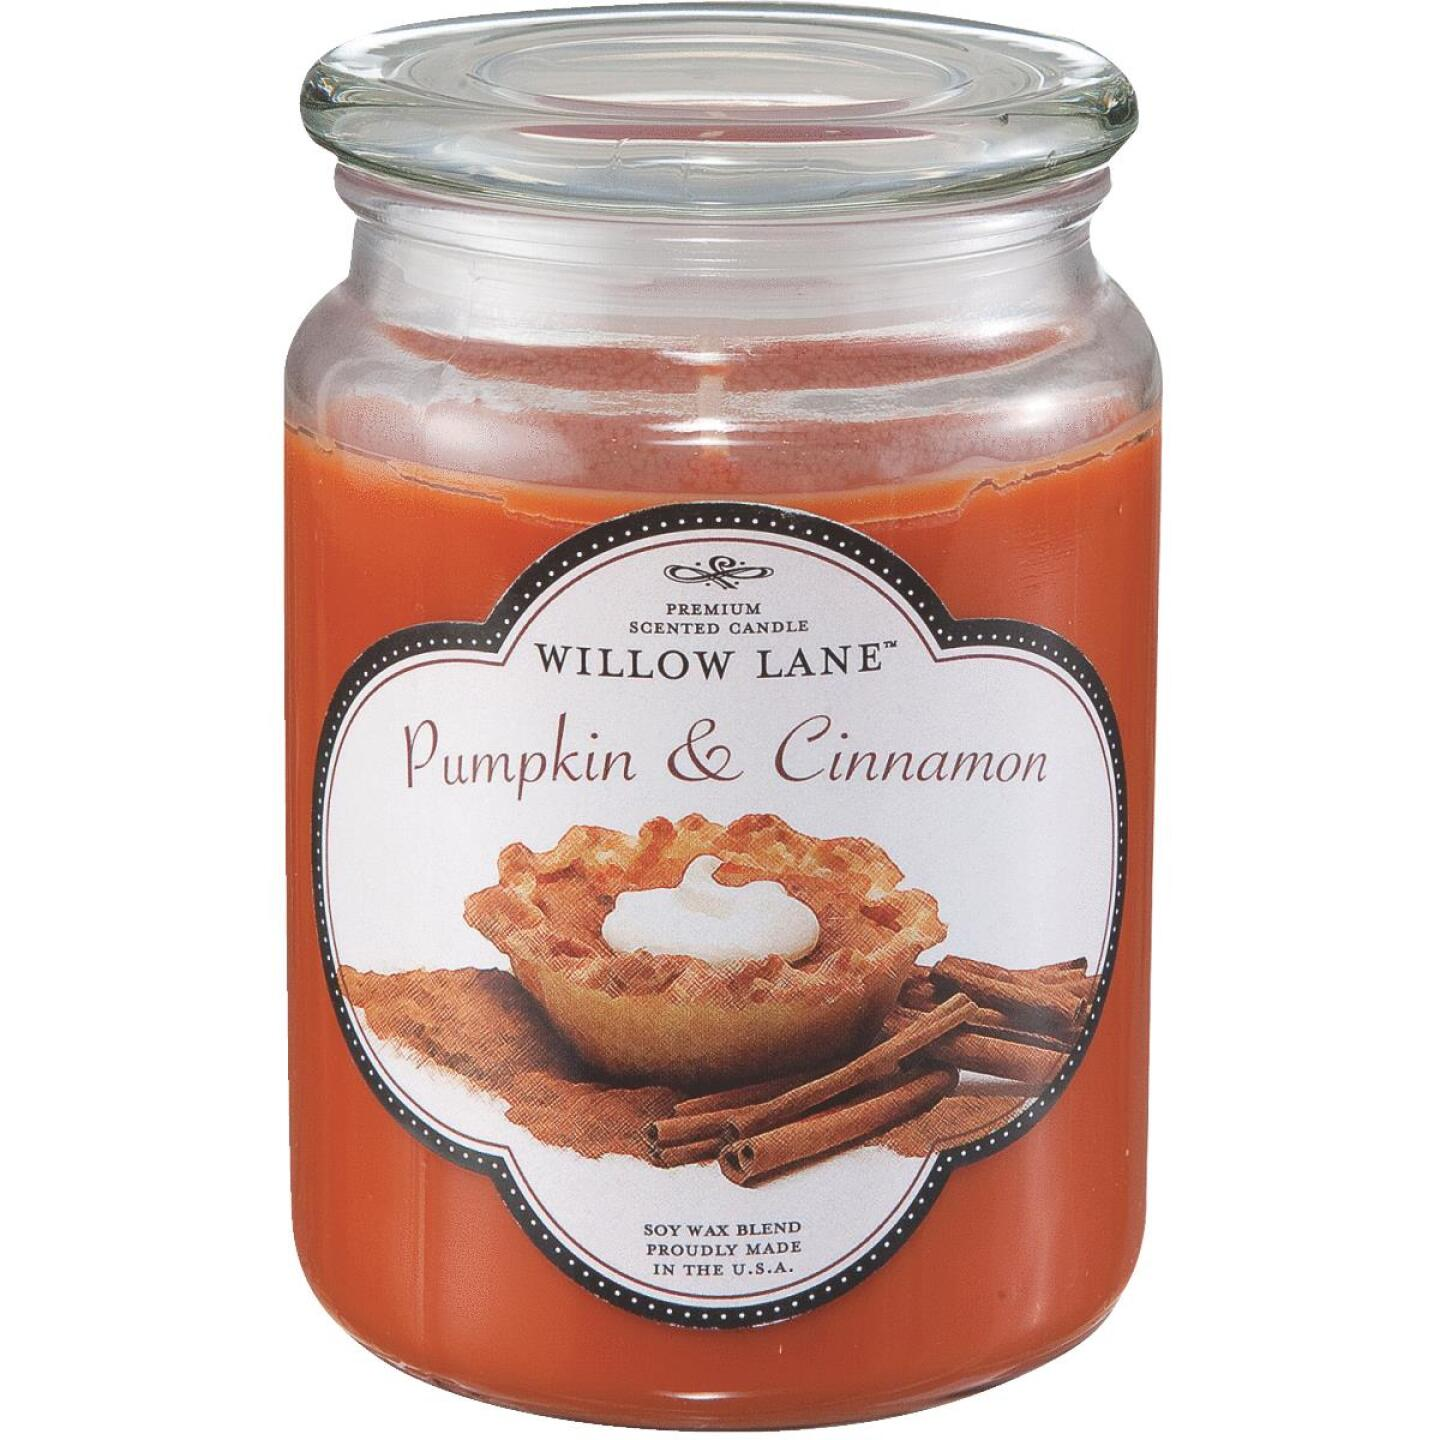 Candle-Lite Willow Lane 19 Oz. Pumpkin & Cinnamon Jar Candle Image 1